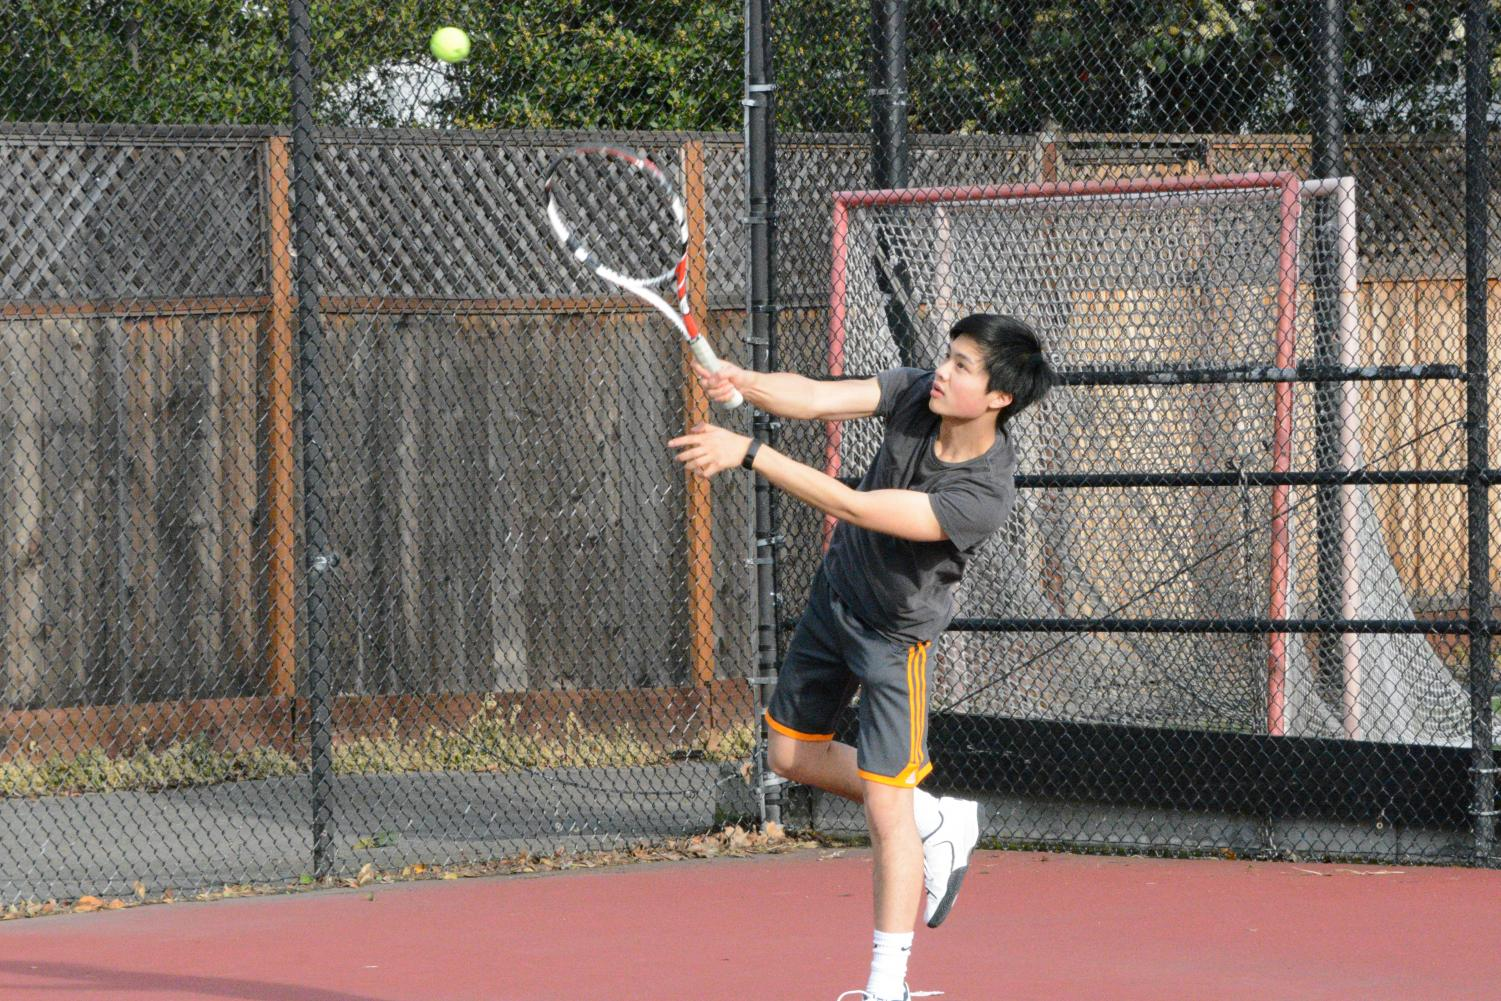 Junior Justin Hee serves in a home game against the San Mateo Bearcats.